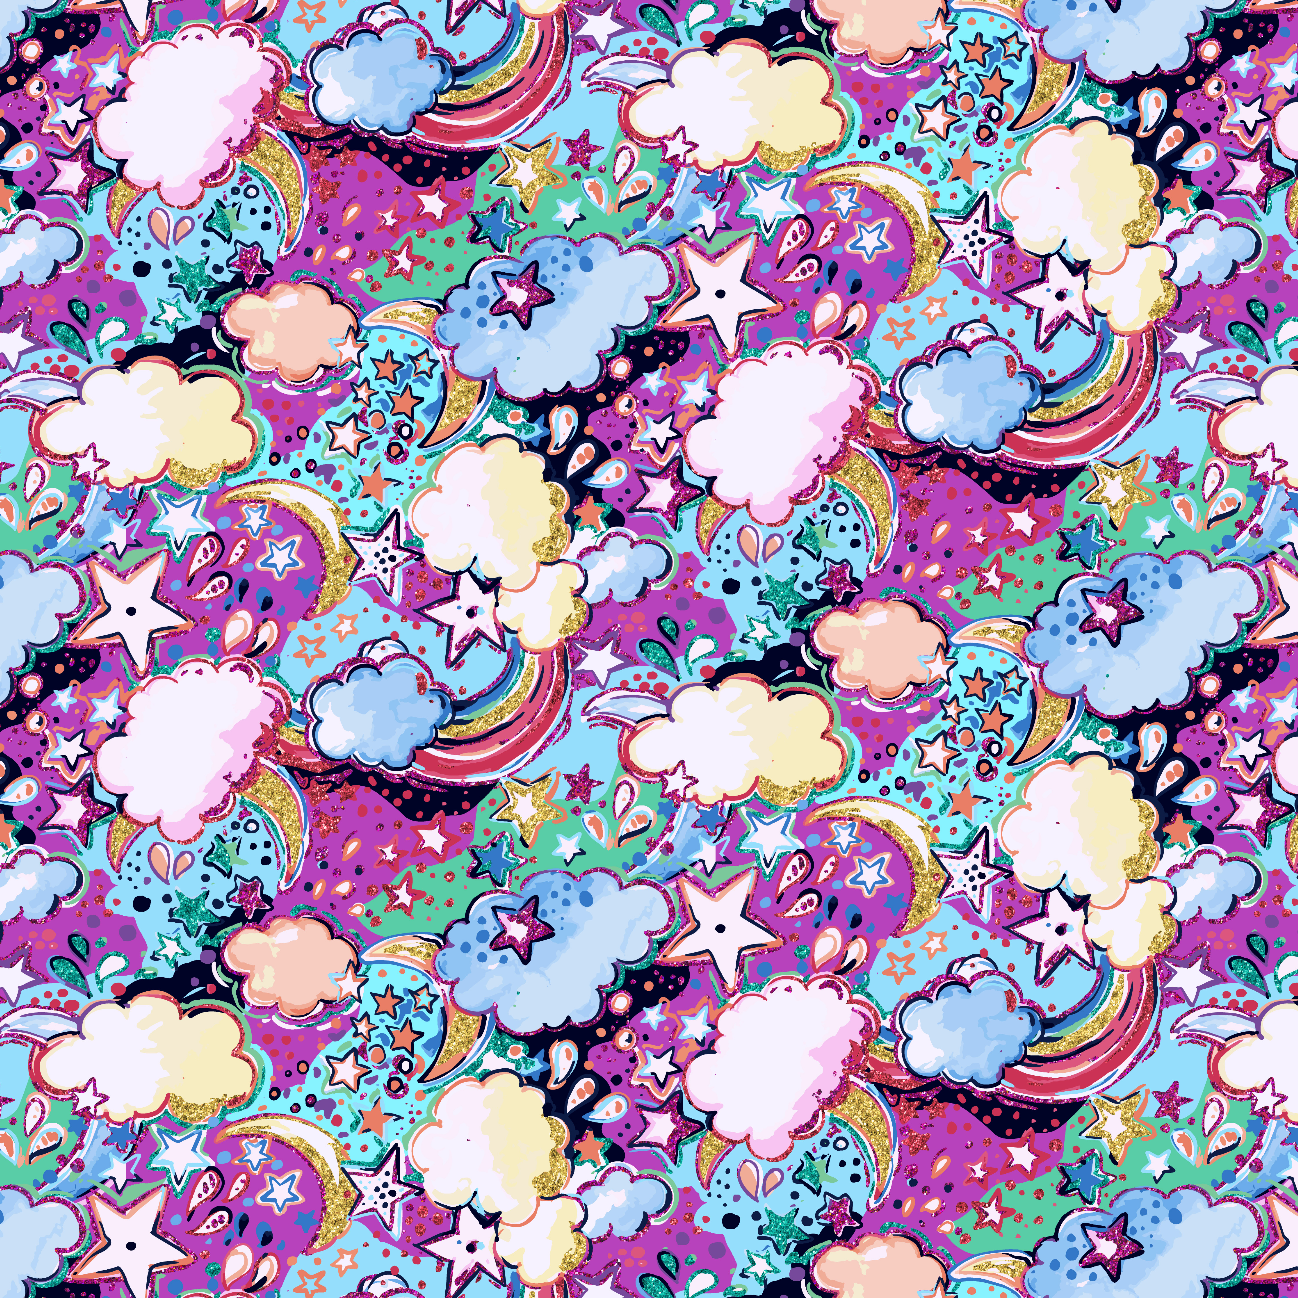 PRE ORDER - Enchanted Land Light Clouds - Digital Fabric Print